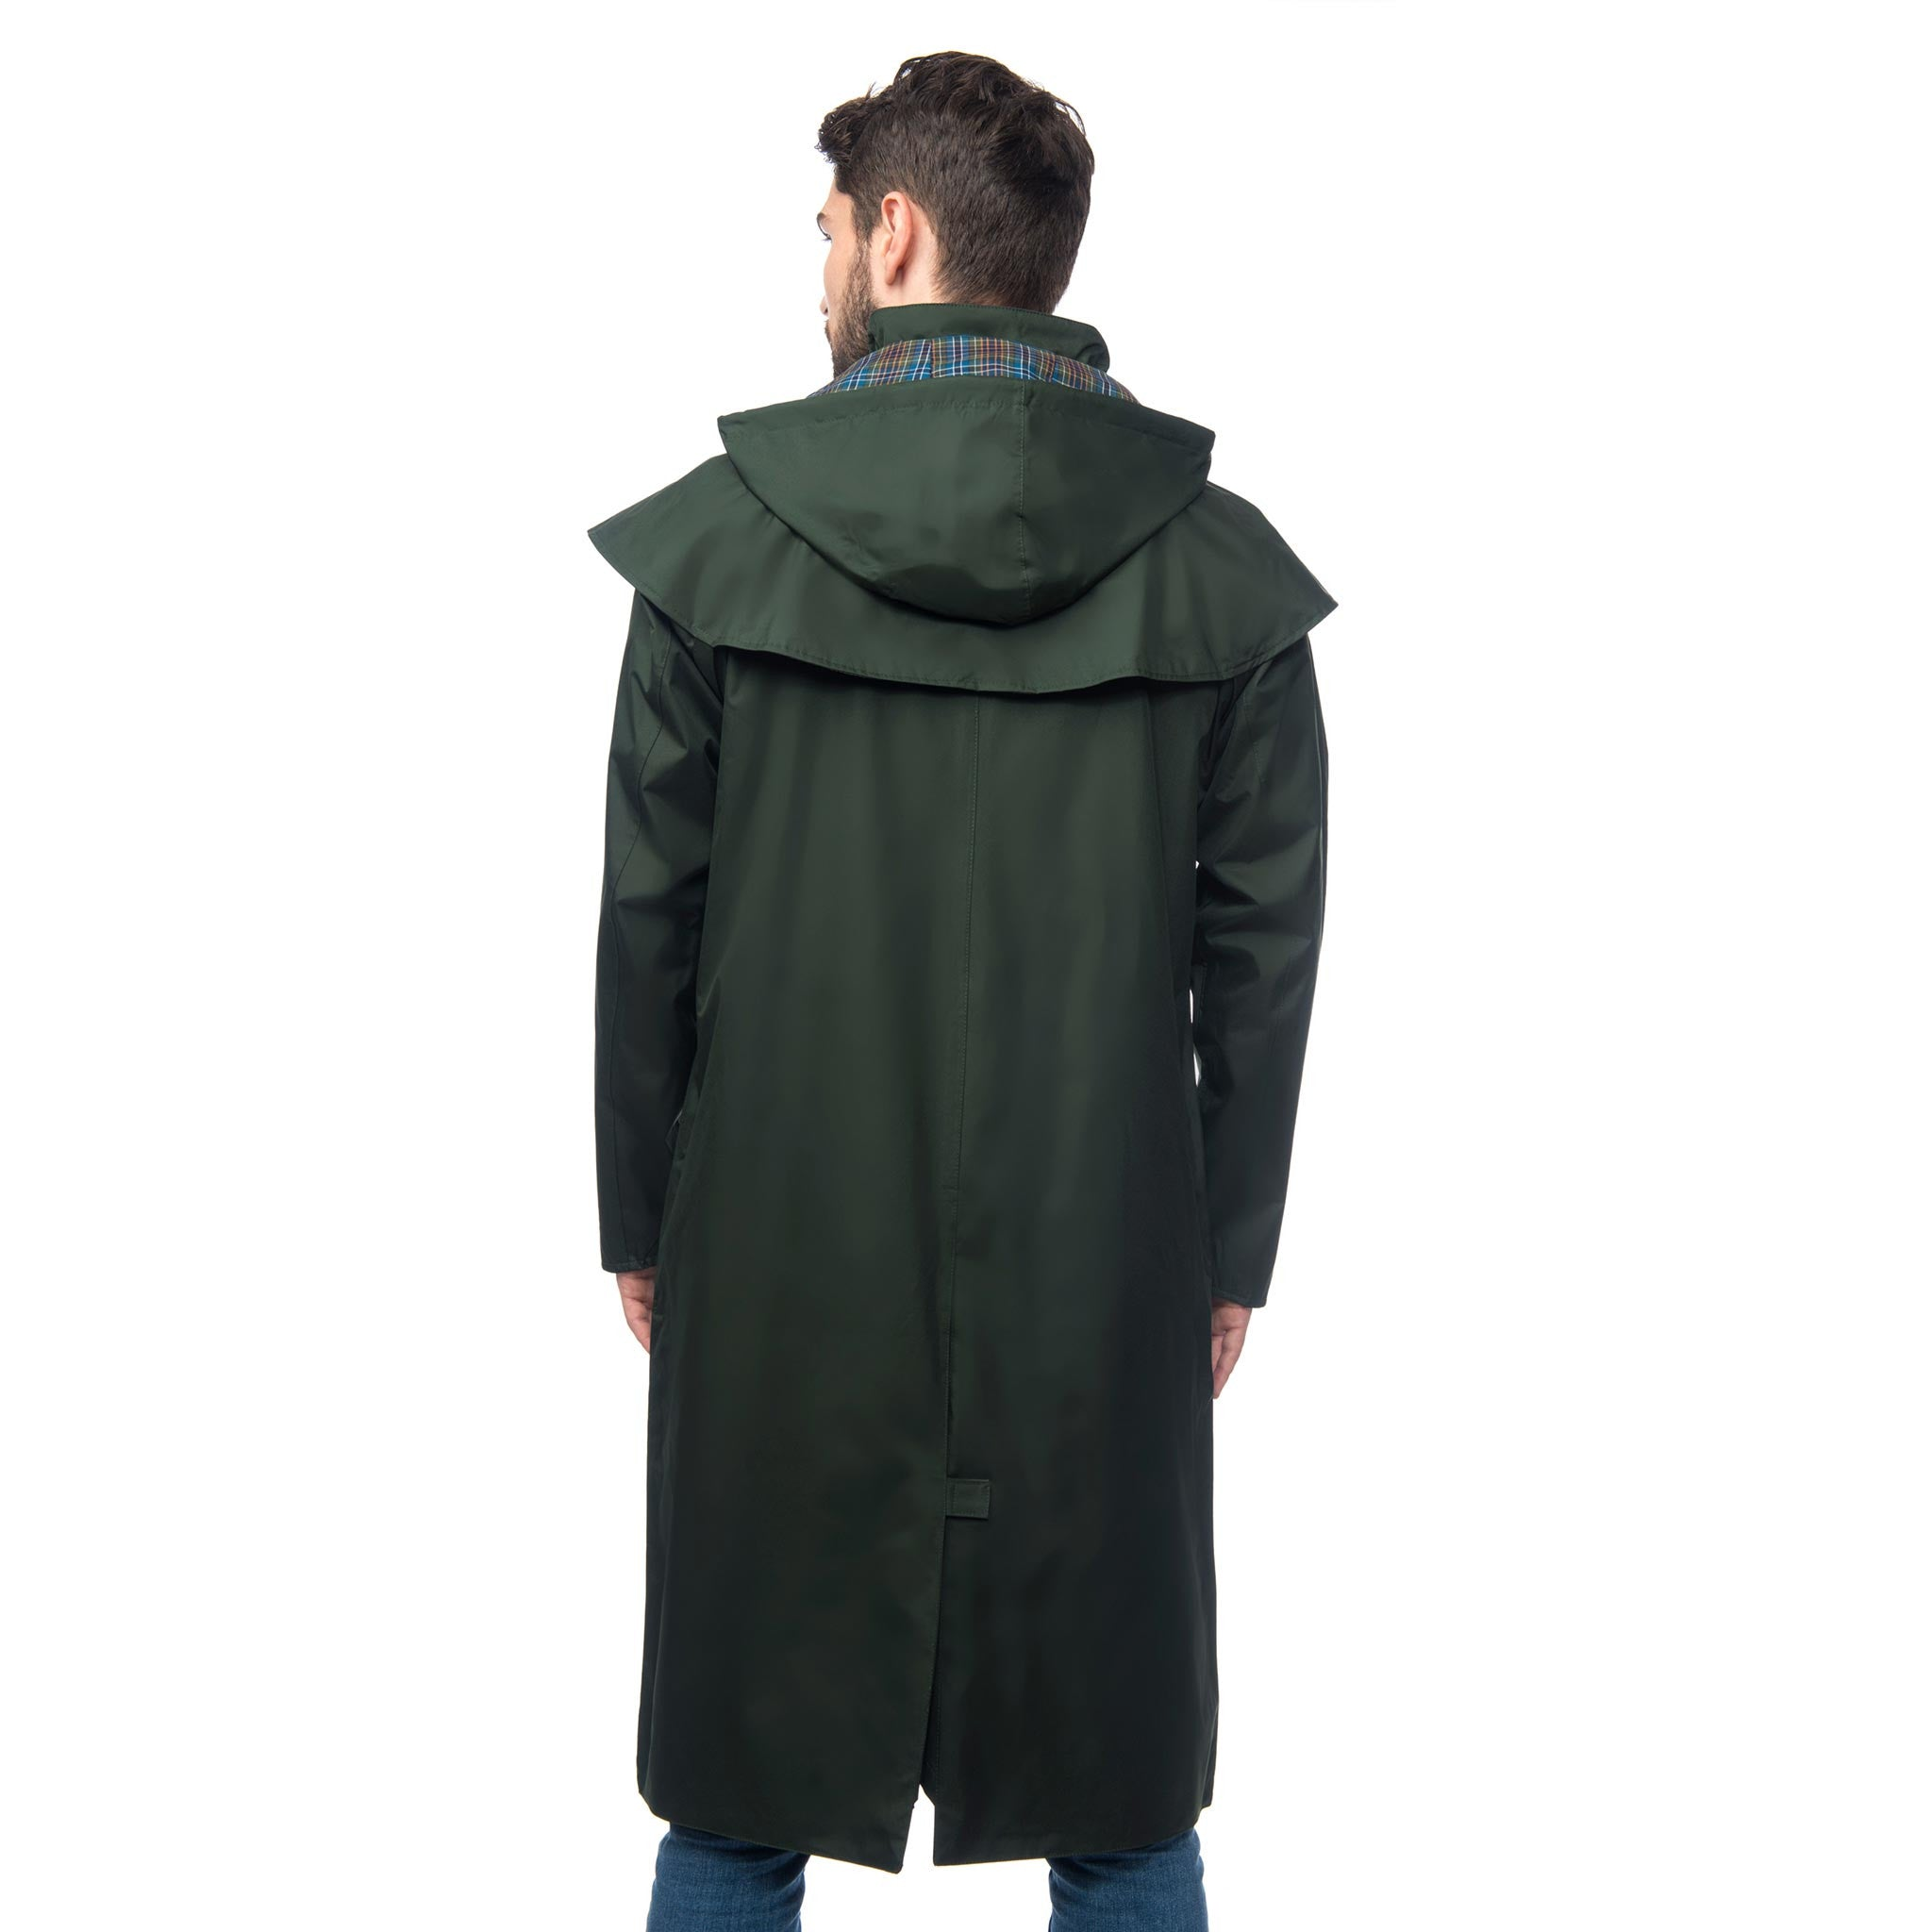 Lighthouse Mens Stockman Full Length Waterproof Rain Coat in green.  Zipped and buttoned. Hood down. Rear view showing back vent.